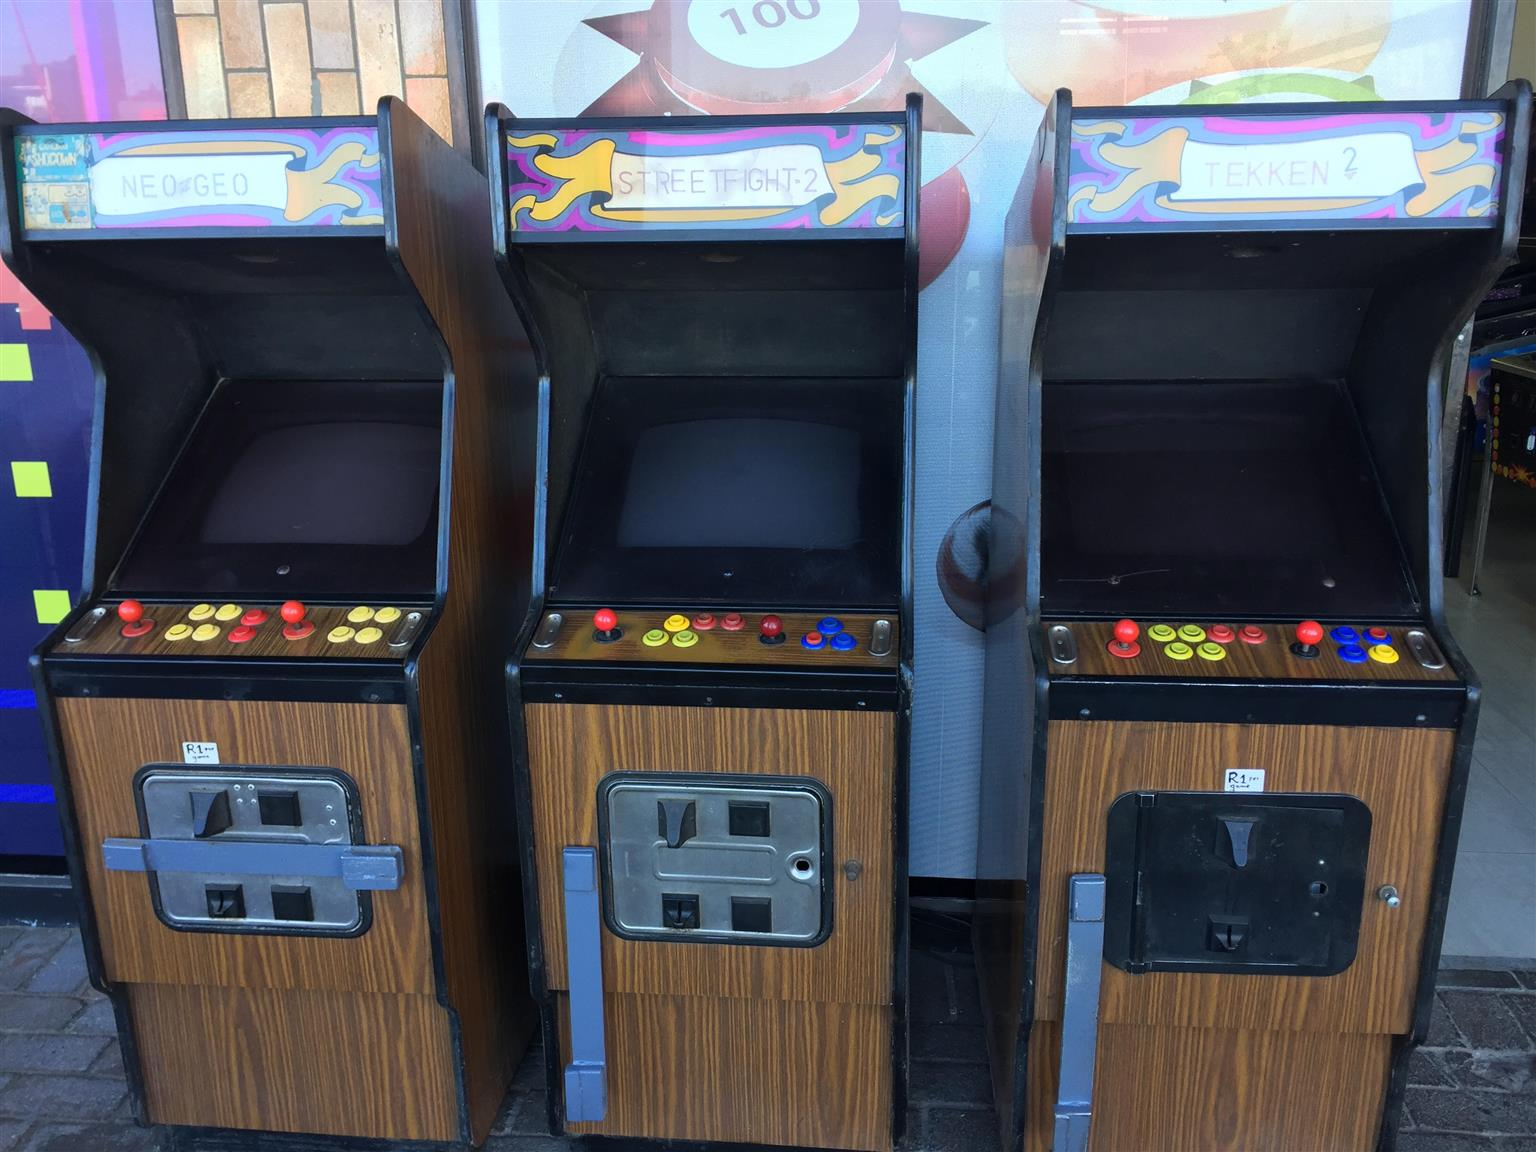 Arcade Old School Single Game Coin Operated Junk Mail